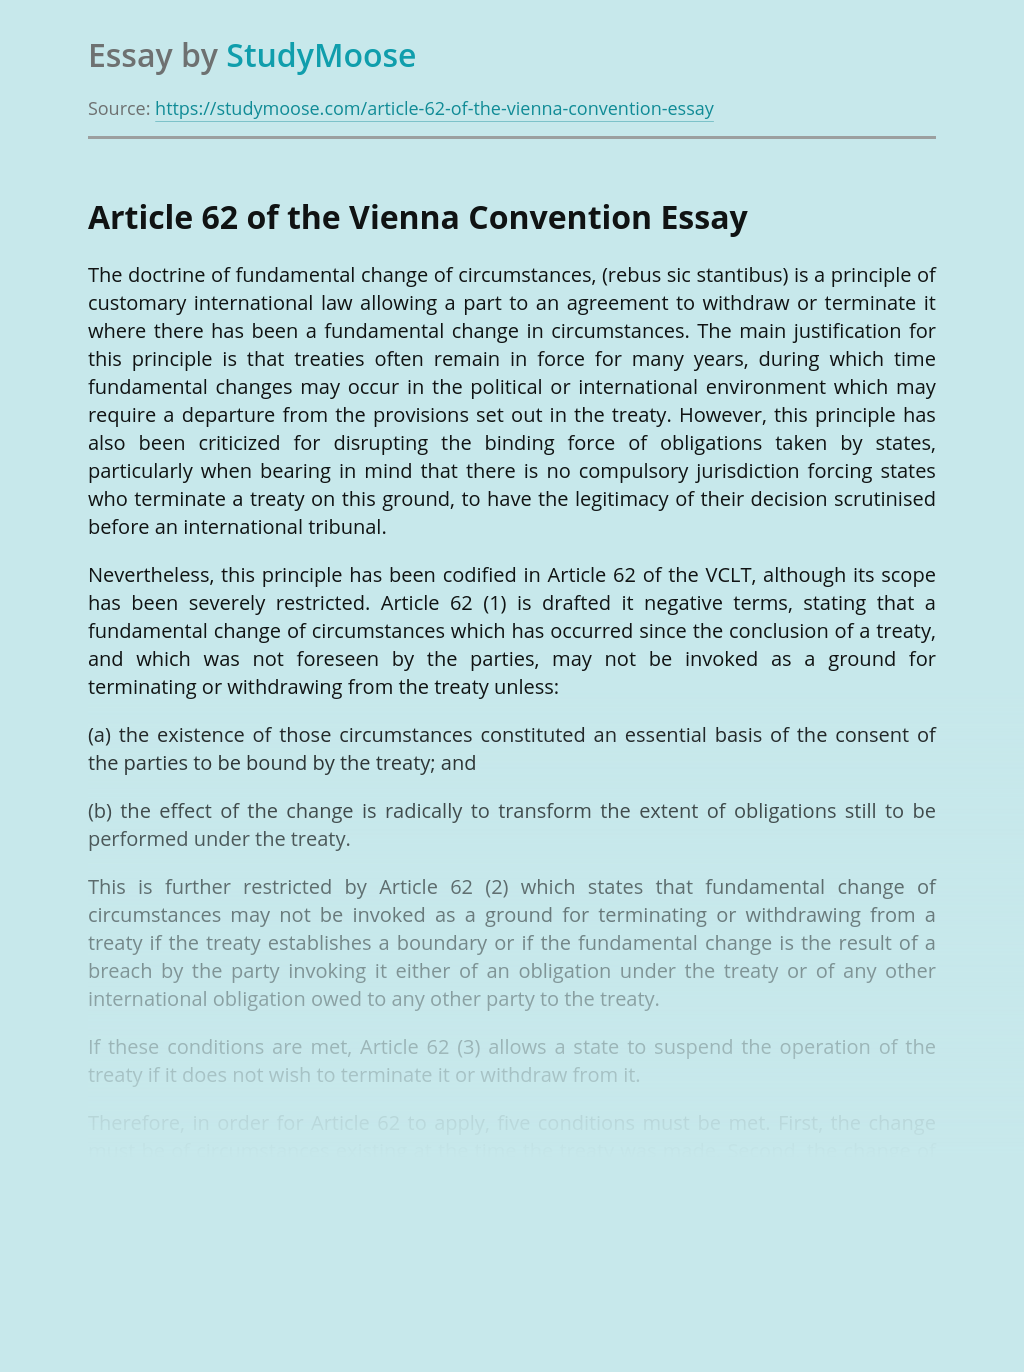 Article 62 of the Vienna Convention